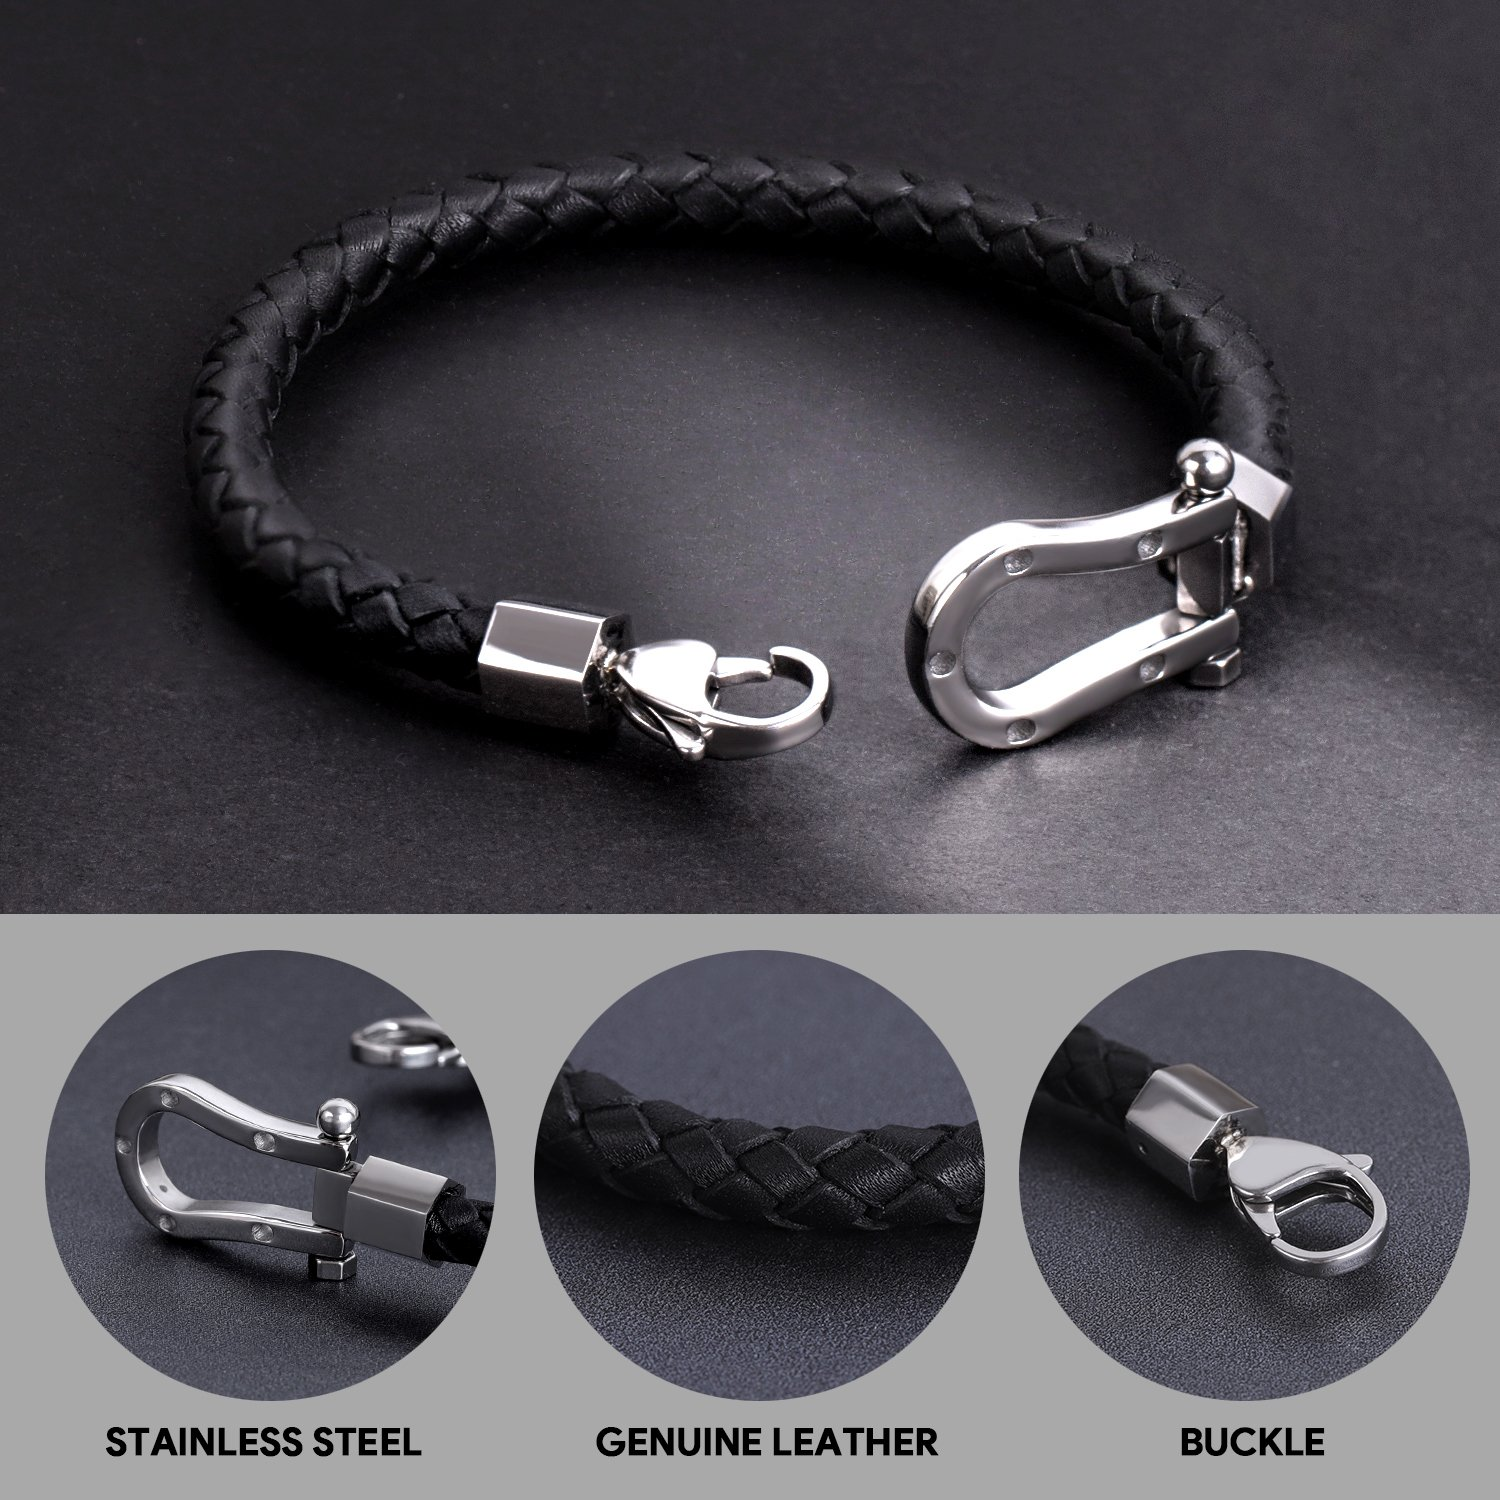 ZD-jewelry Mens  Leather Bracelet Cowhide Braided Good Luck Horseshoe Stainless Steel, Black Wrist Cuff Bangle Lobster Clip, Bracelet For Men 8.5 inch by ZD-jewelry (Image #2)